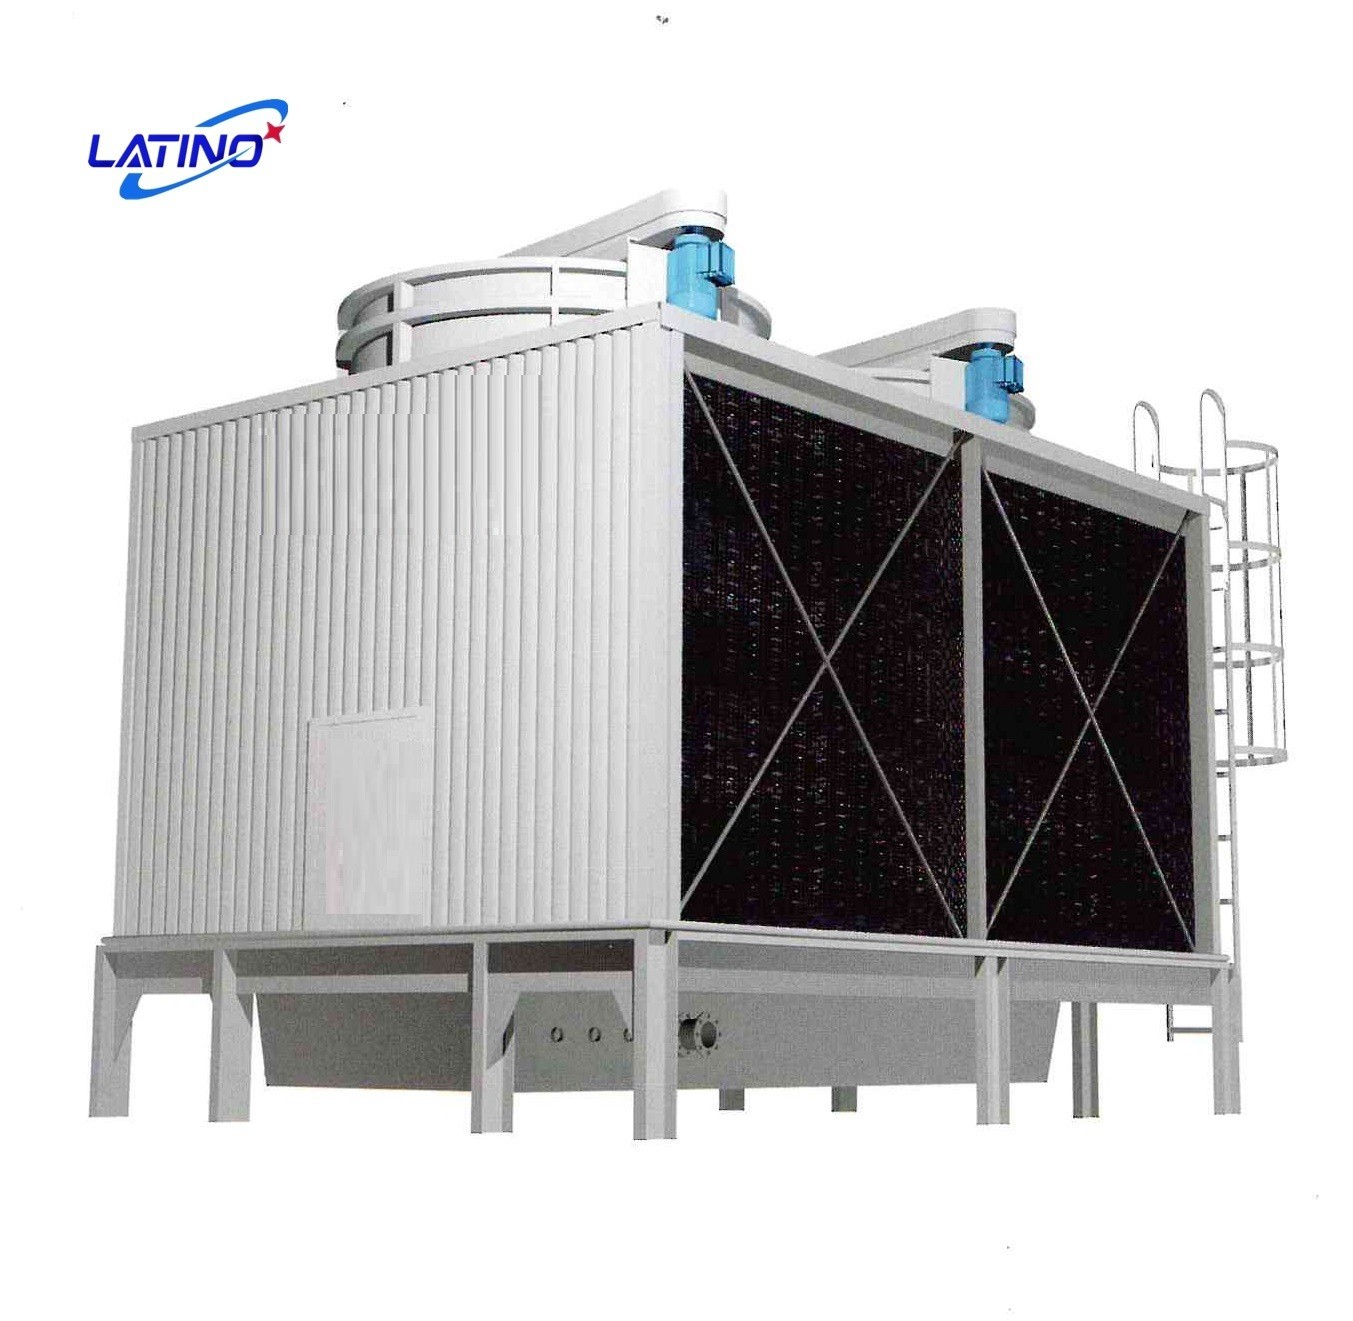 How to install the cooling towers in a commercial building